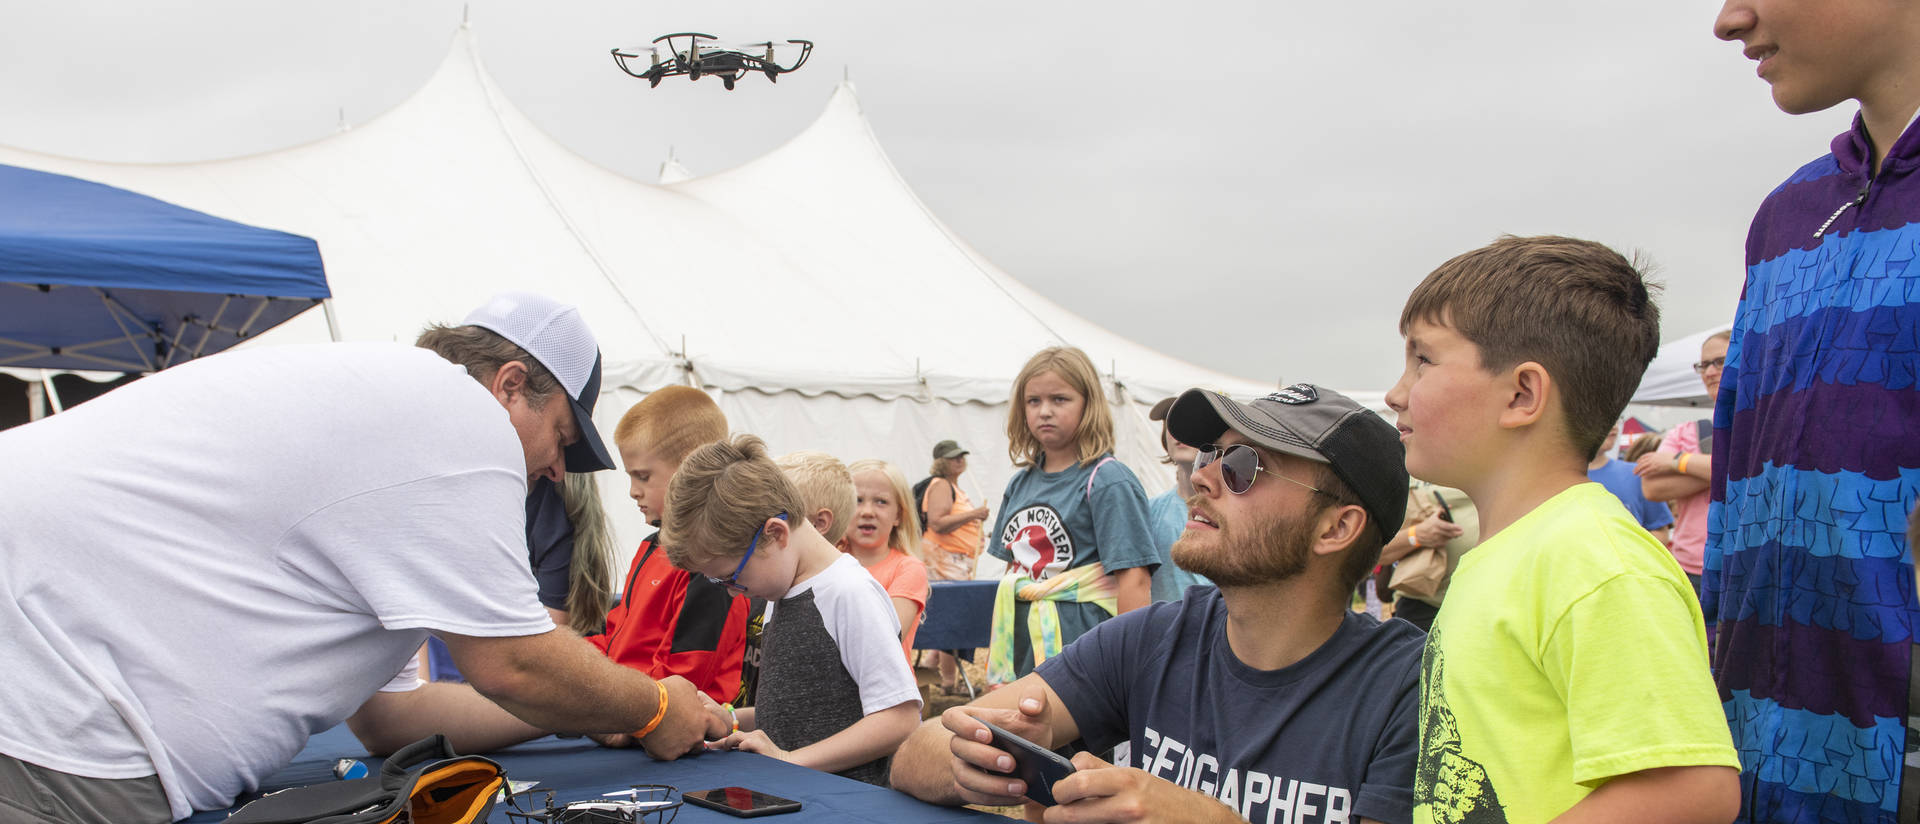 Kids and college student at toy drone table event